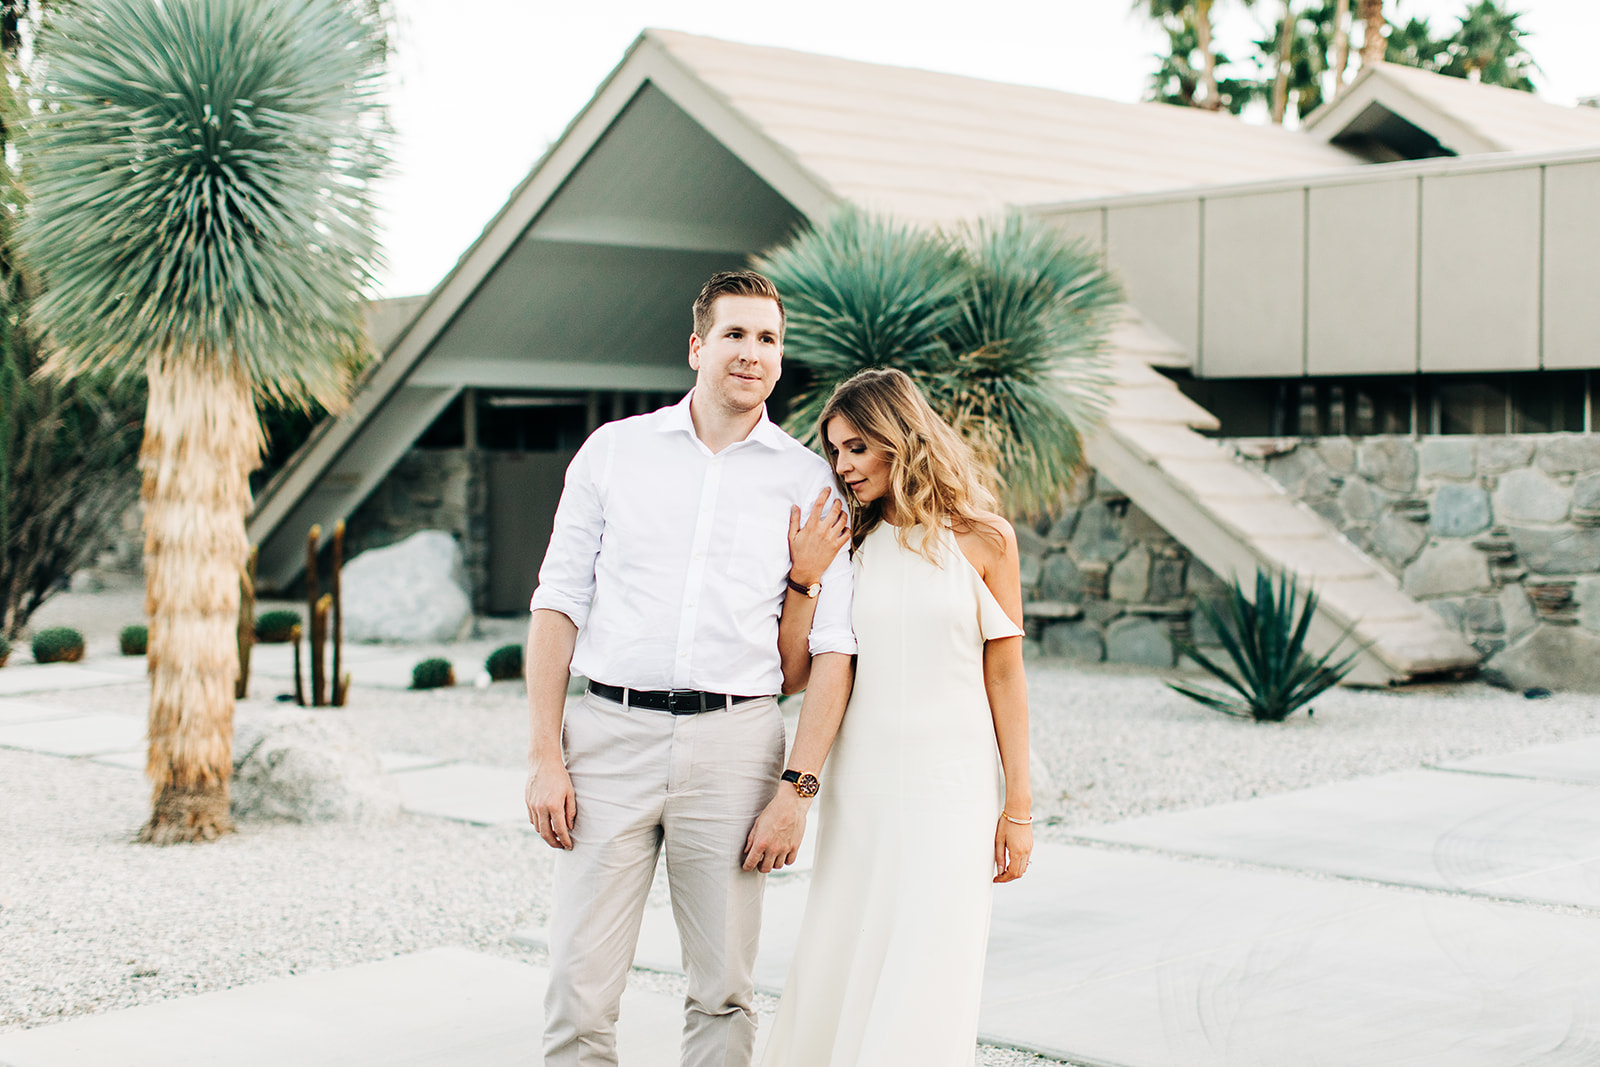 Paulina-Drew_Palm-Springs-Engagement-Photos_Clarisse-Rae_Southern-California-Wedding-Photographer-37